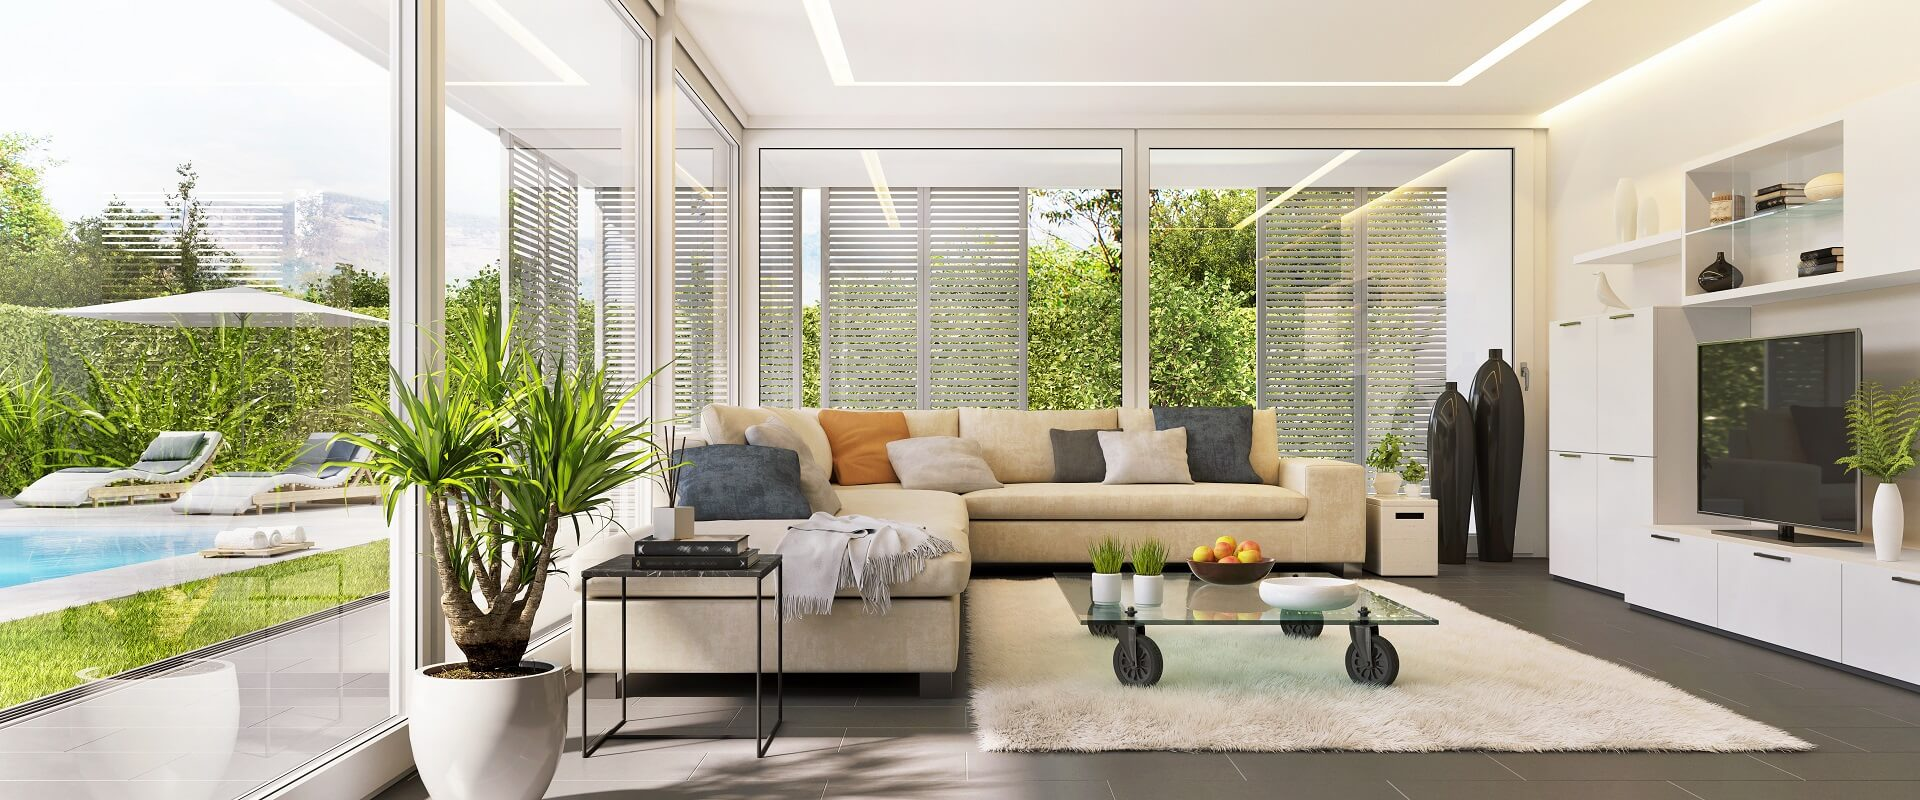 Indoor Air Quality Torrance